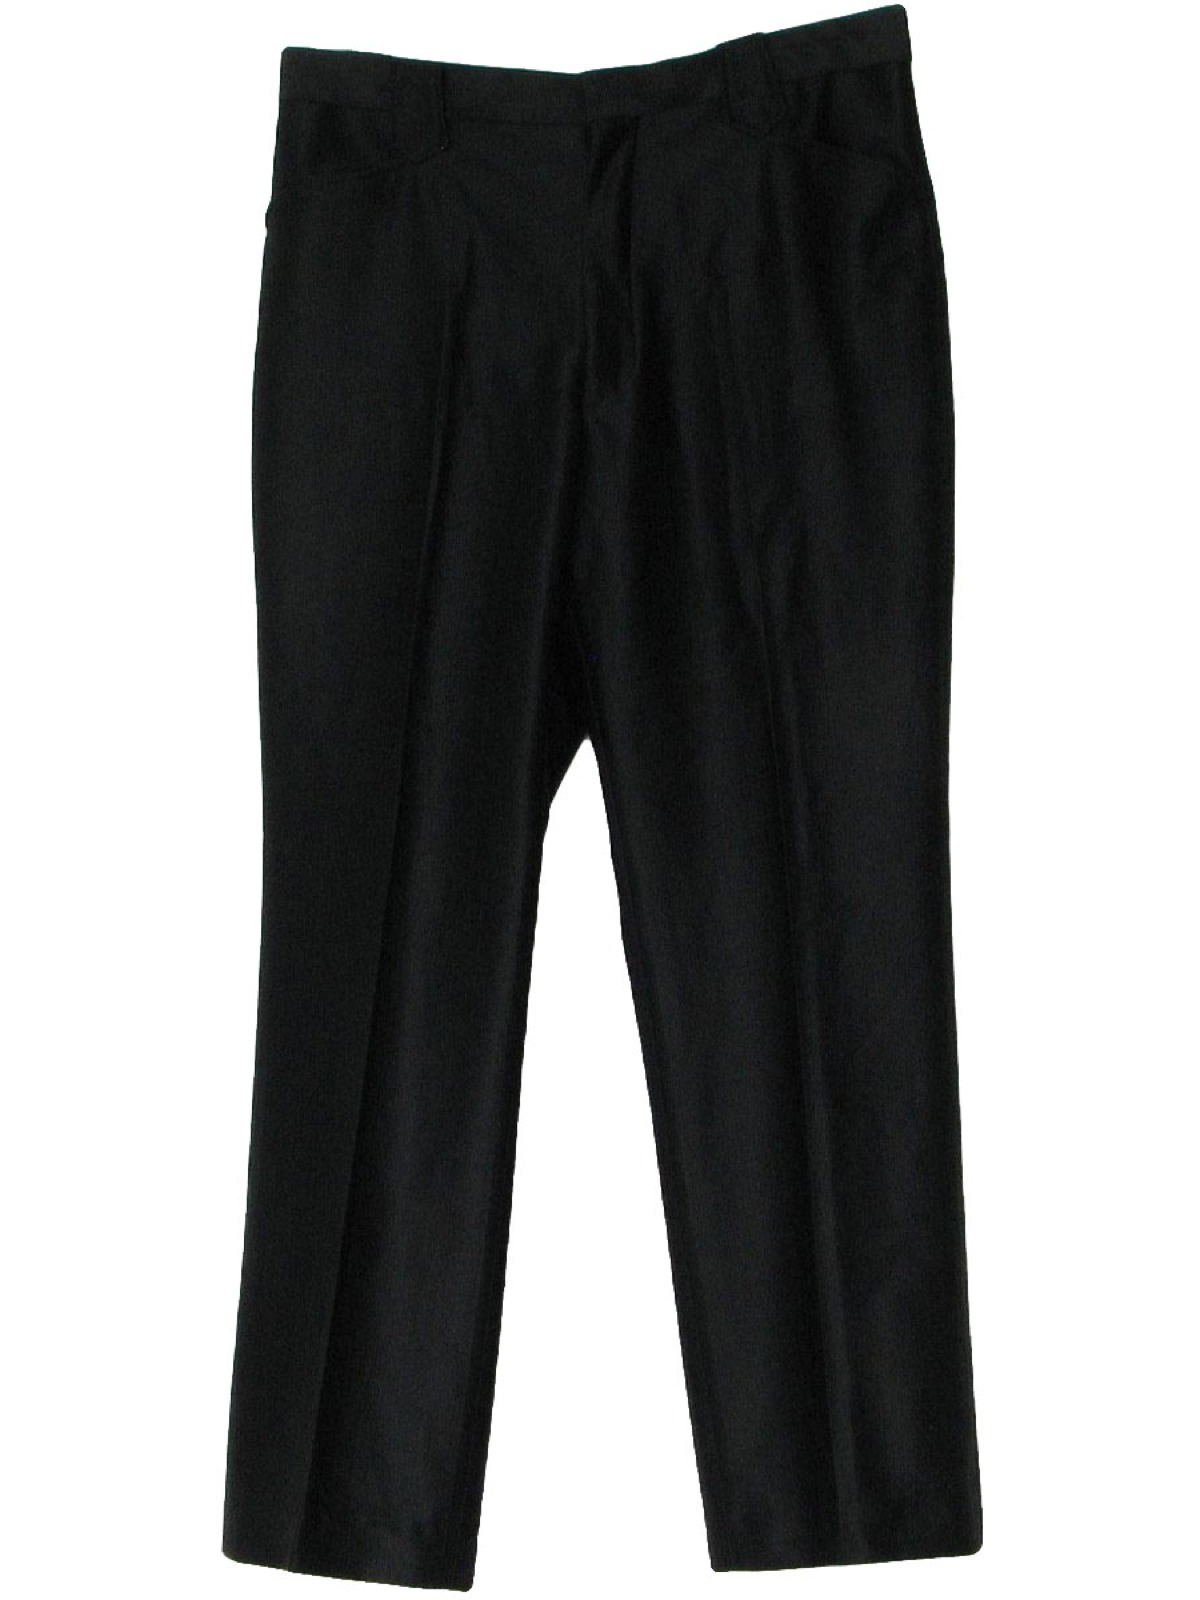 Western Dress Pants Images